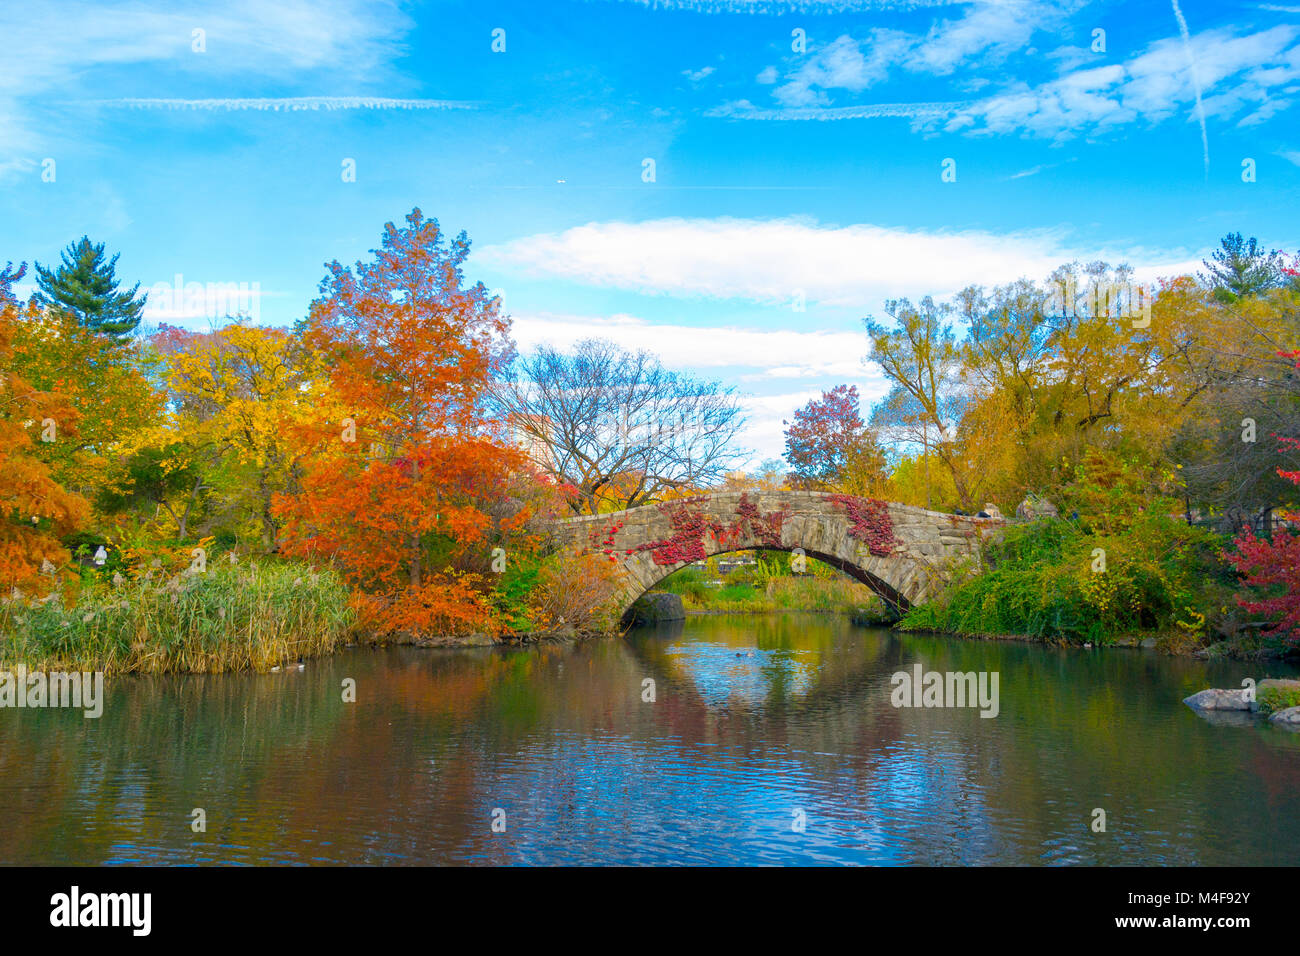 Gapstow bridge in a colorfull fall morning - Stock Image